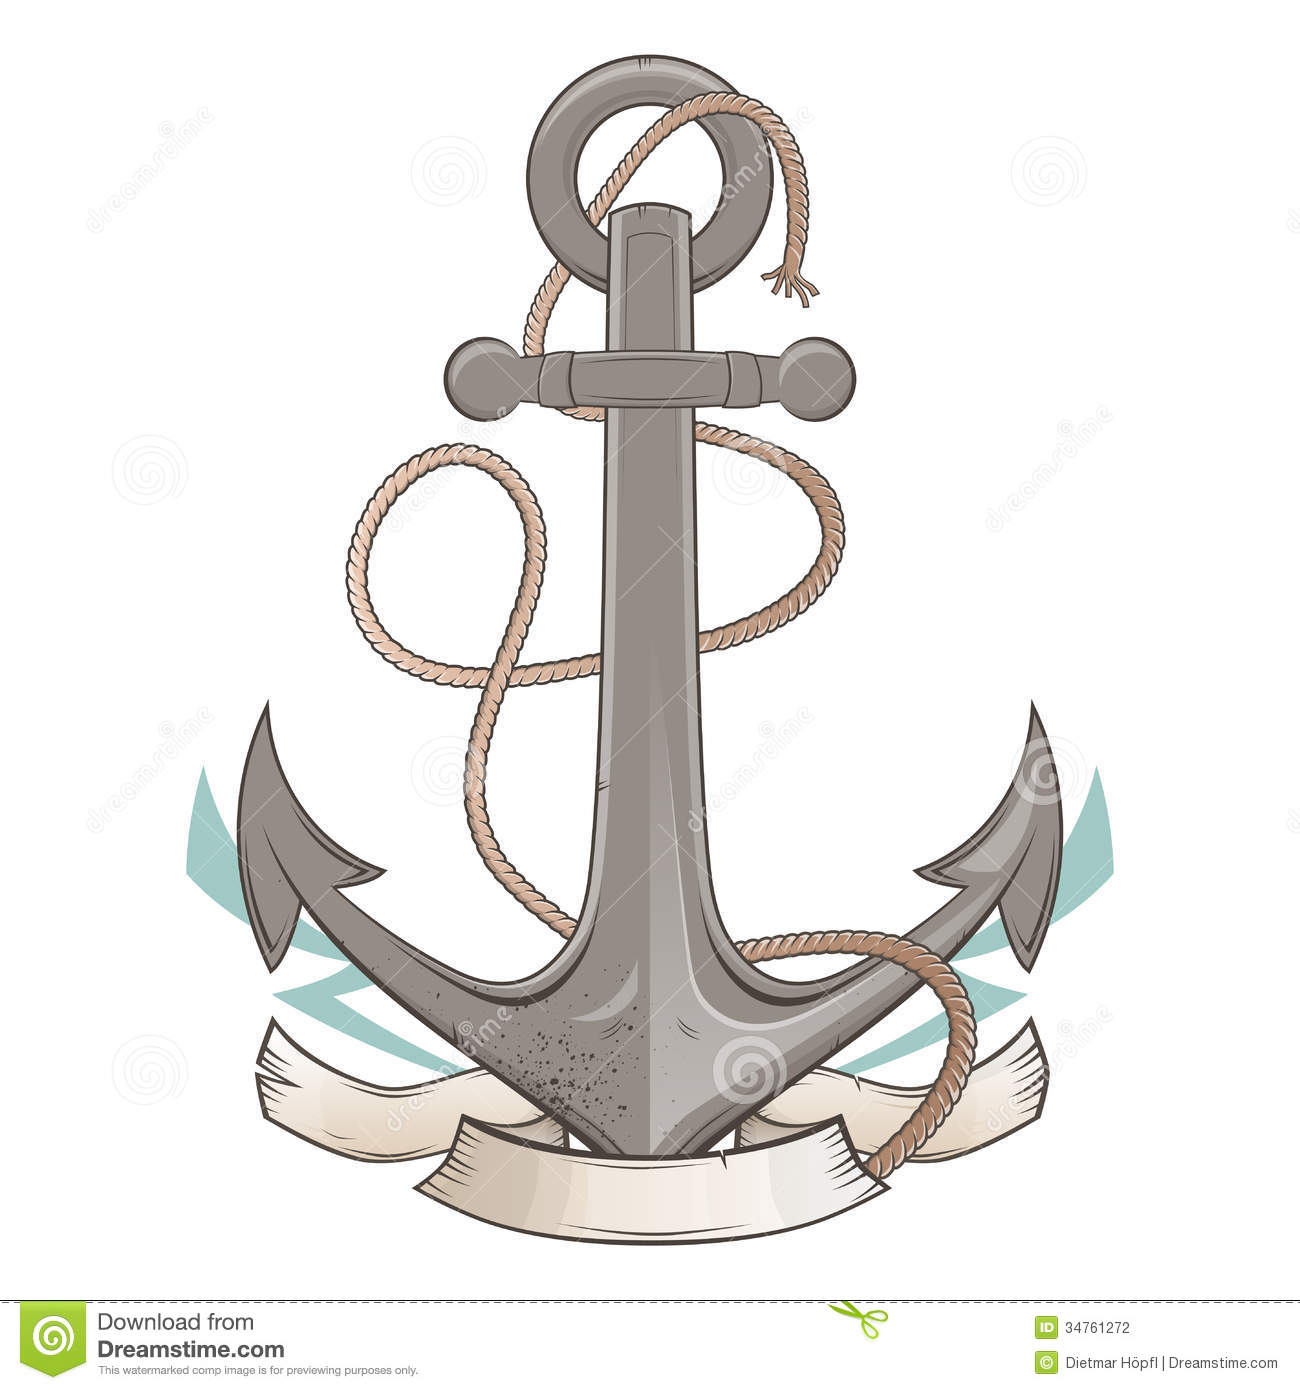 Vintage Cartoon Anchor Stock Vector Illustration Of Isolated